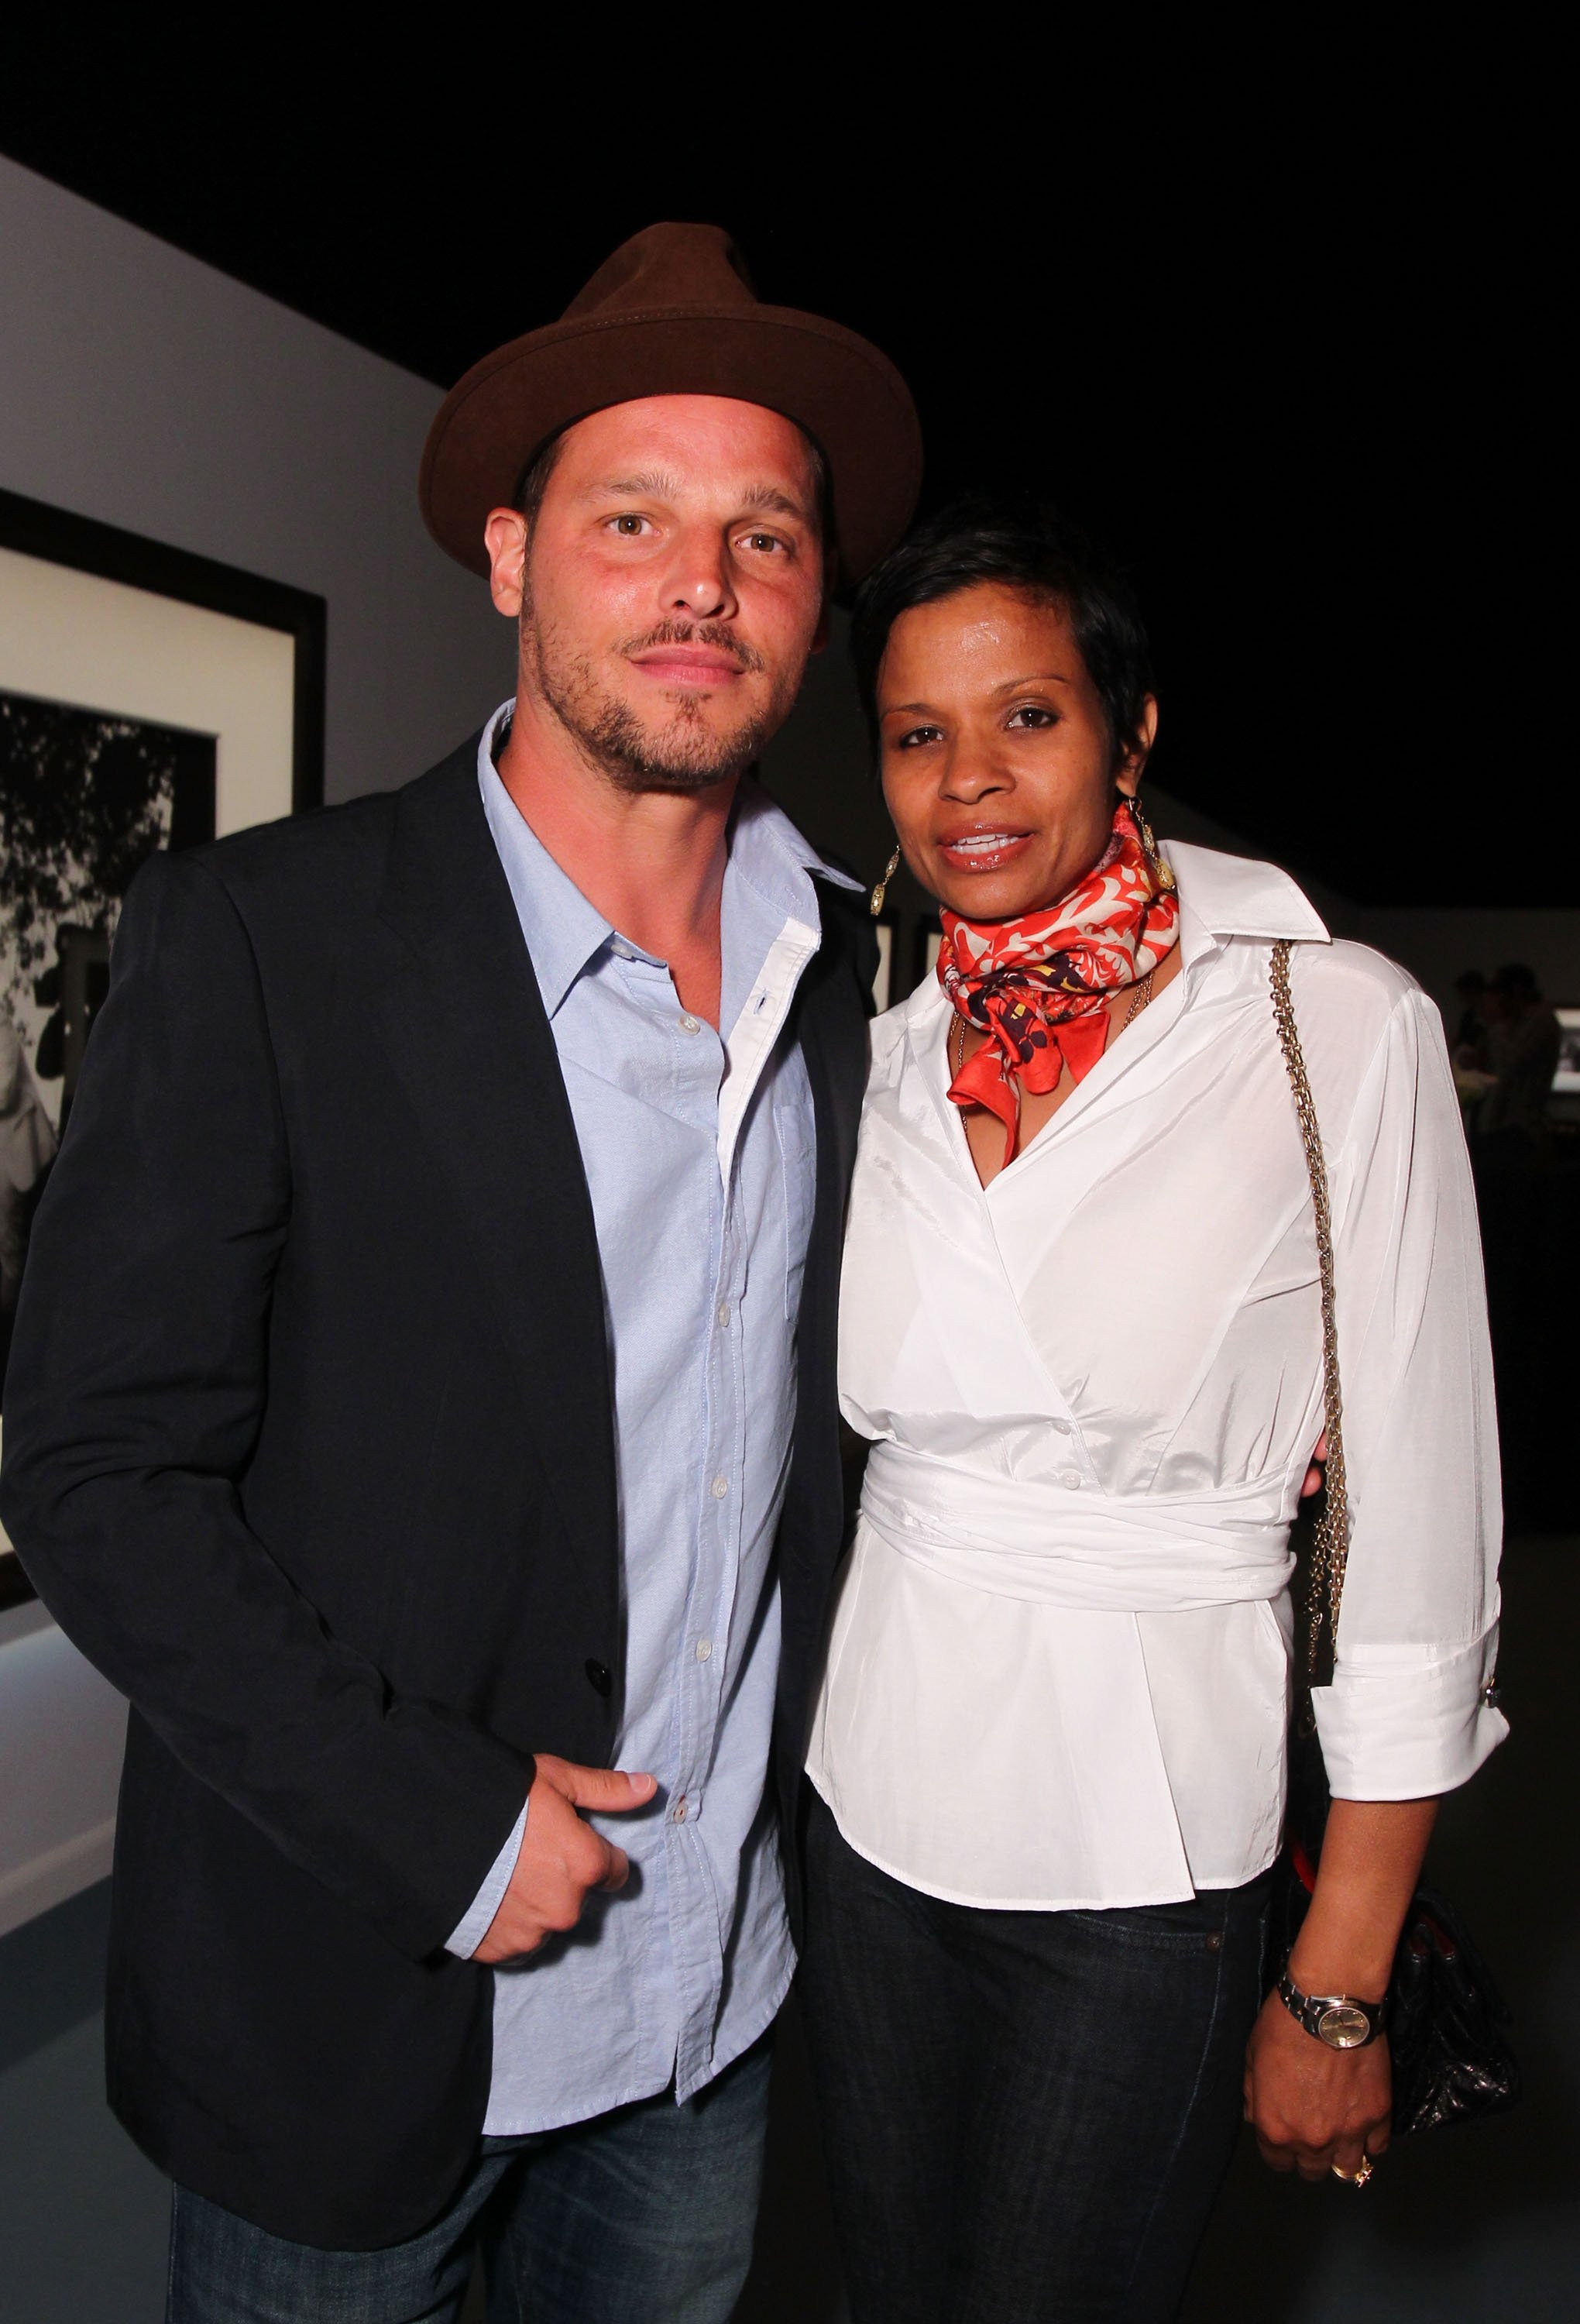 Justin Chambers and Keisha Chambers on April 28, 2011 in Culver City, California | Source: Getty Images/Global Images Ukraine